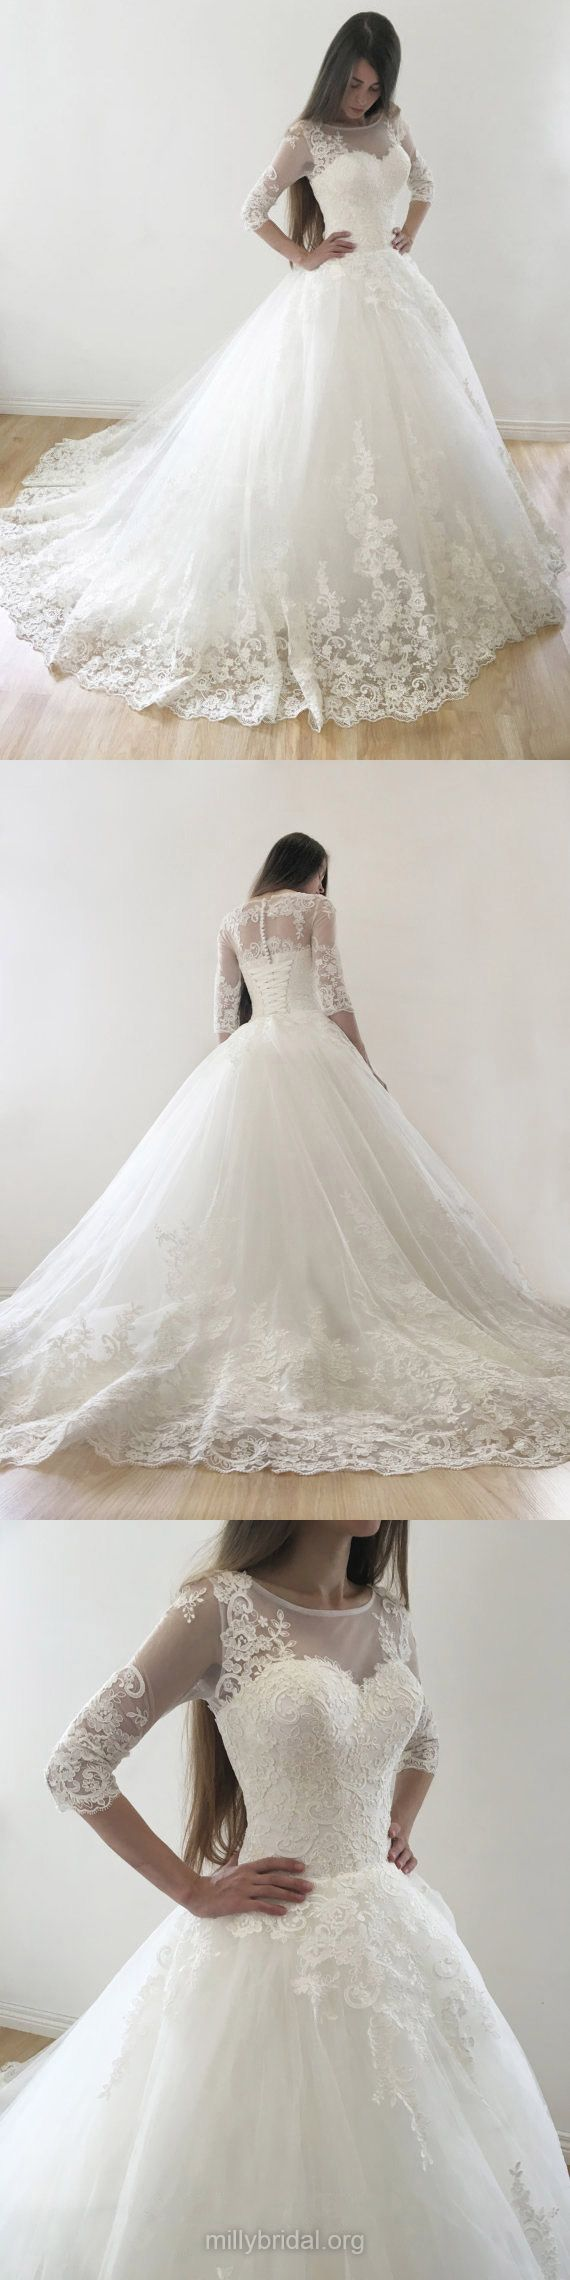 Lace Wedding Dresses Ball Gown, Princess Wedding Dresses Modest, 2018 Bridal Gowns Scoop Neck, Tulle Wedding Dresses Court Train Appliques 3/4 Sleeve